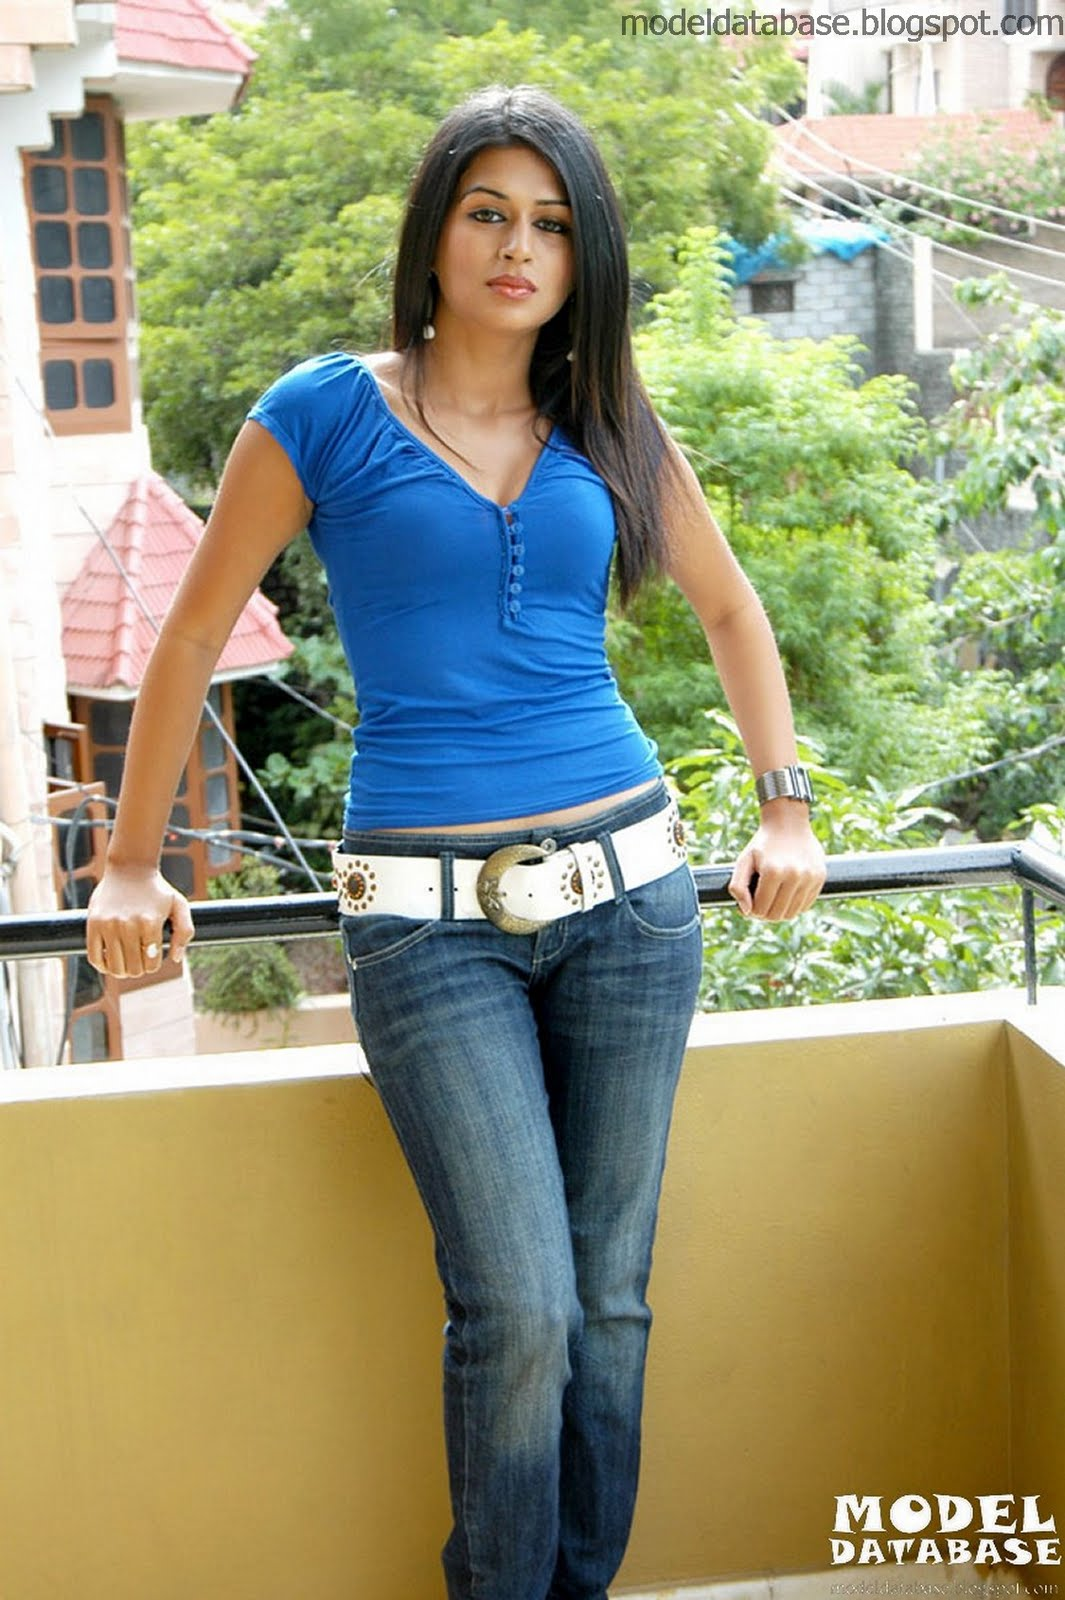 Indian Actress Sraddha Das Red Hot In A Blue Tops And Jeans Stills